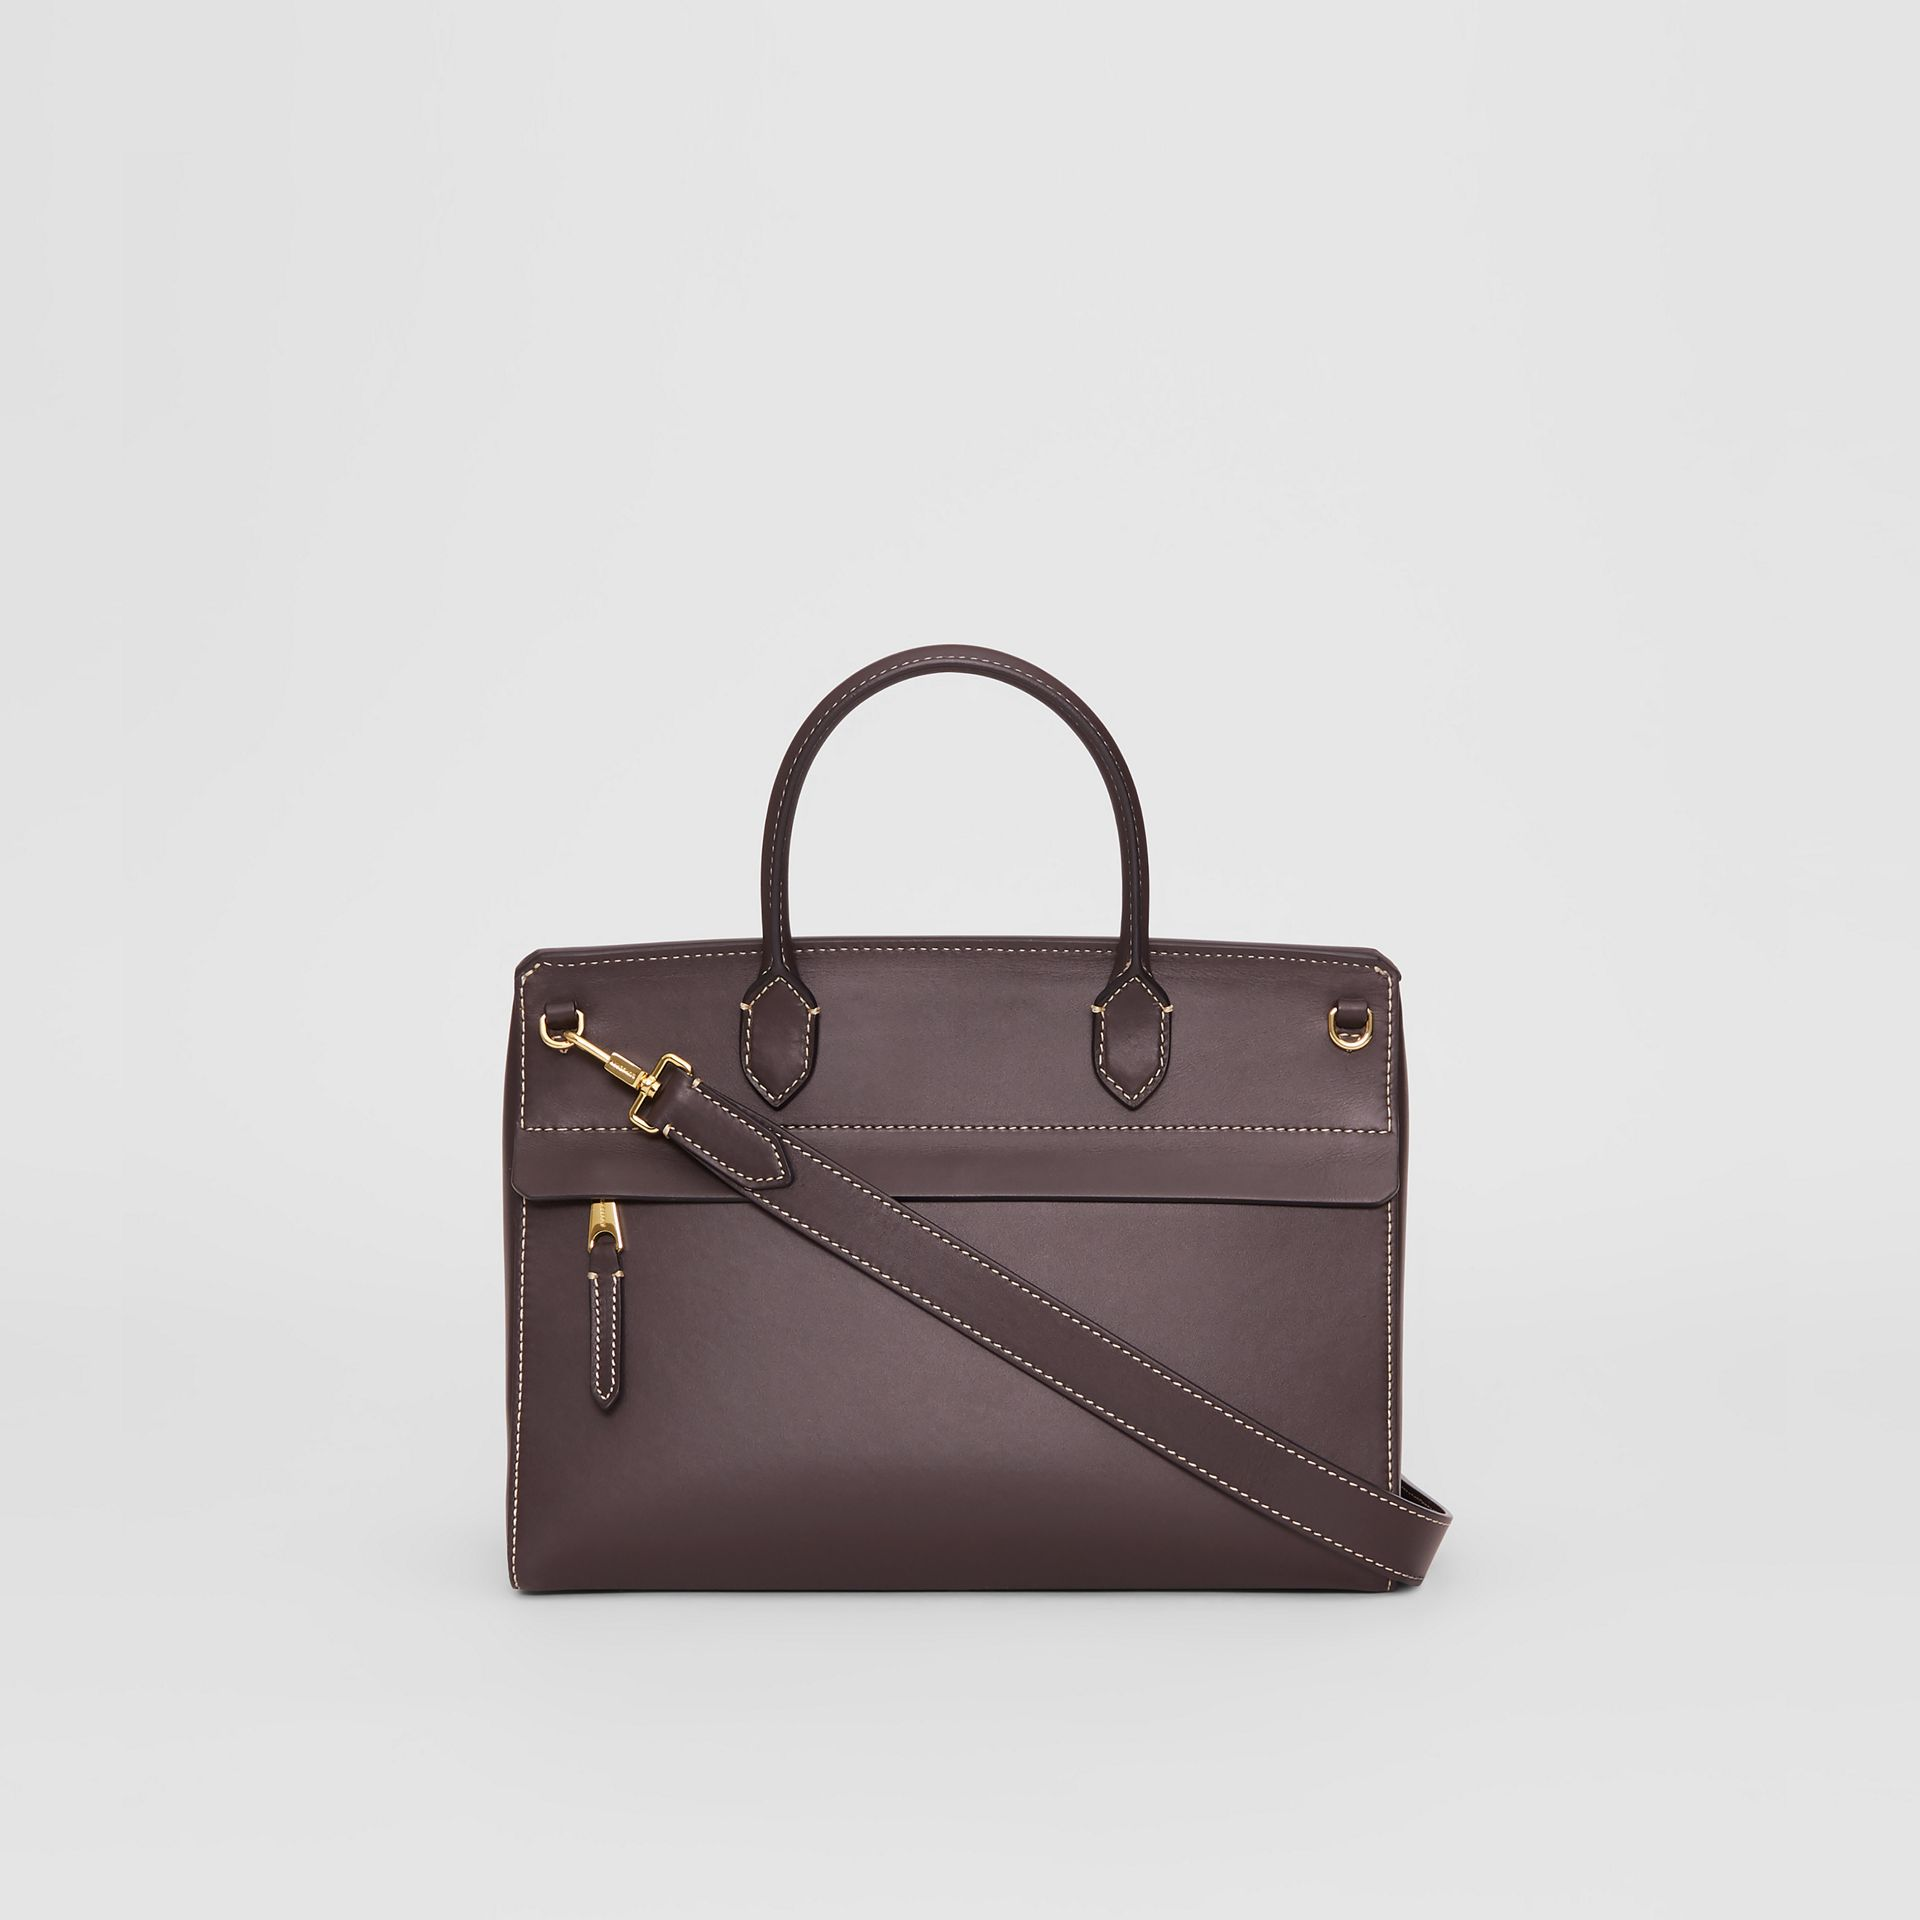 Small Leather Elizabeth Bag in Coffee - Women | Burberry - gallery image 7